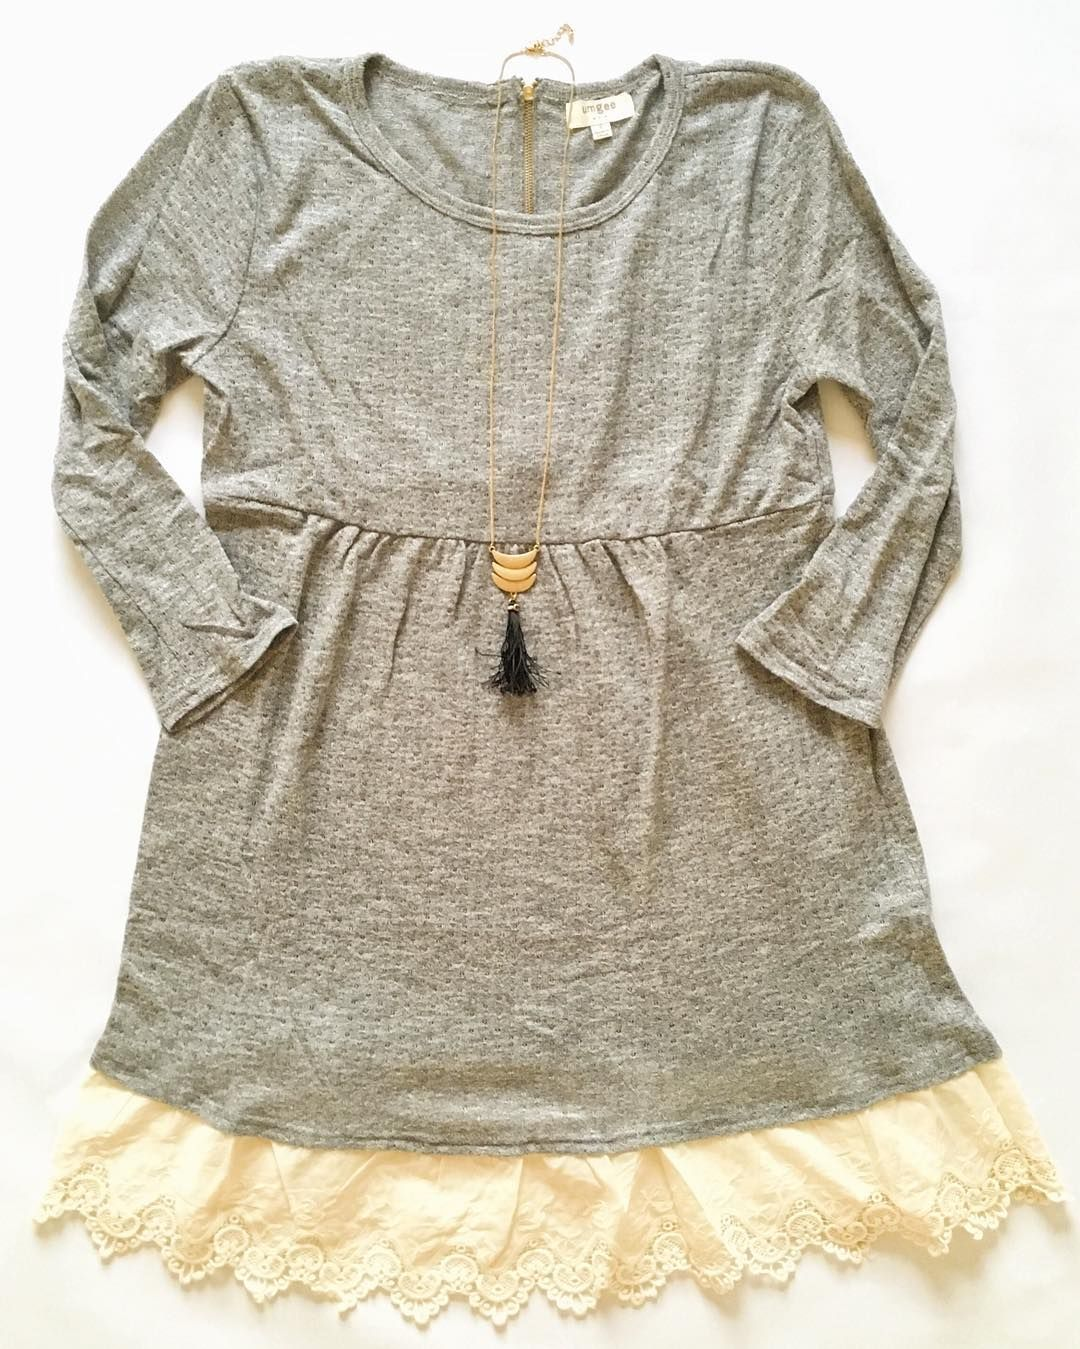 Easin' into warmer weather // Lace details & super soft grays // This tunic top dress has the sweetest zipper back detail! // $32 // link in bio  Don't forget to enter the $50 gift card #giveaway !! Winner announced tonight! {see previous post for details}  #fashion #fashionlove #lookoftheday #fblogs #fashionblog #igfashionlovers #fashiondiaries #styleblogger #ootd #wiw #currentlywearing #springstyle #shopping #springdresses #outfit #stylediaries #trend #win #followme #boutique…